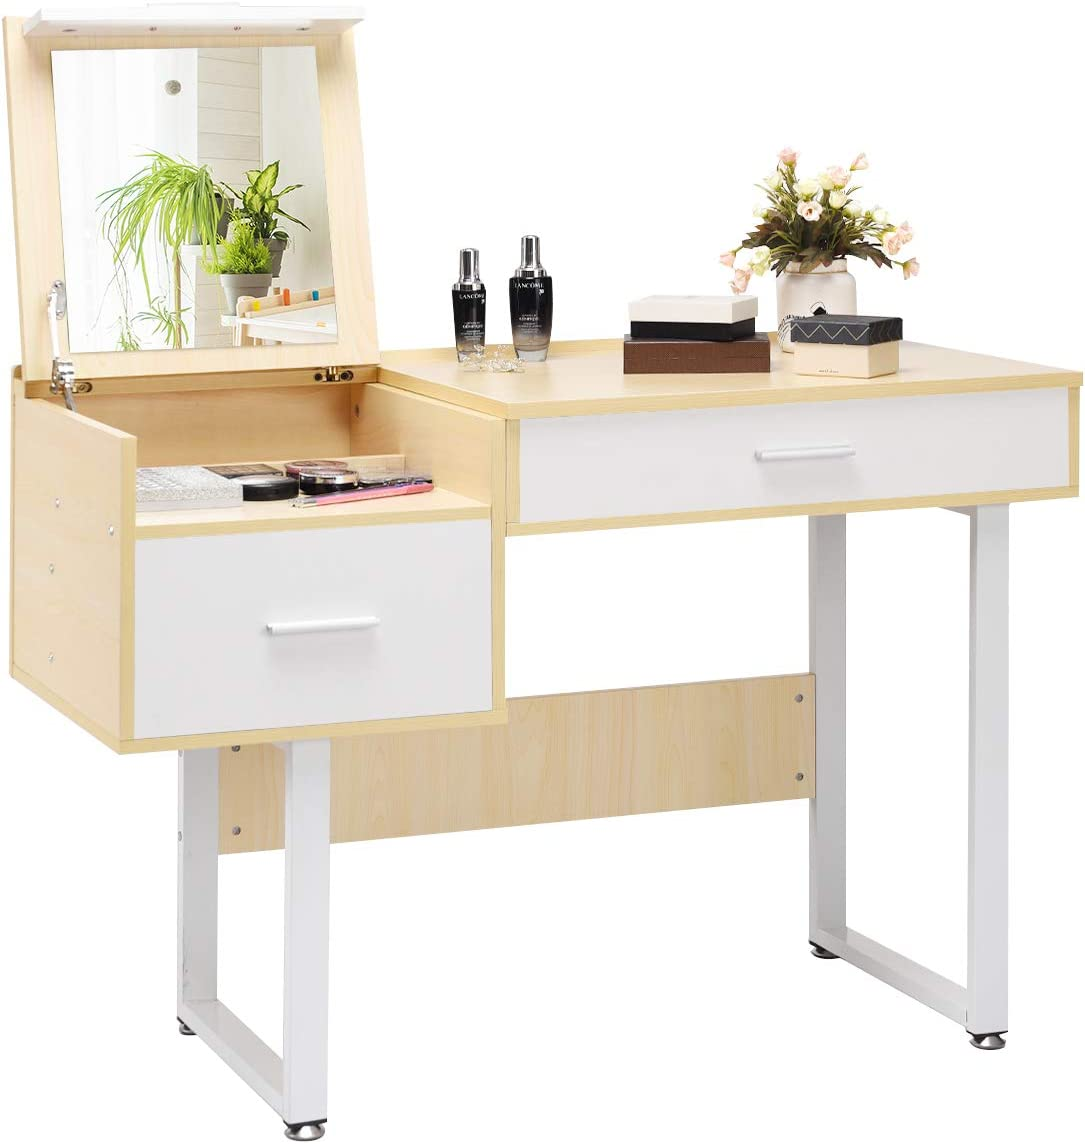 Charmaid Makeup Table Writing Desk With Flip Top Mirror Vanity Table With 5 Storage Compartments Dressing Table Computer Laptop Desk With 2 Large Drawers For Students Girls Women Kitchen Dining